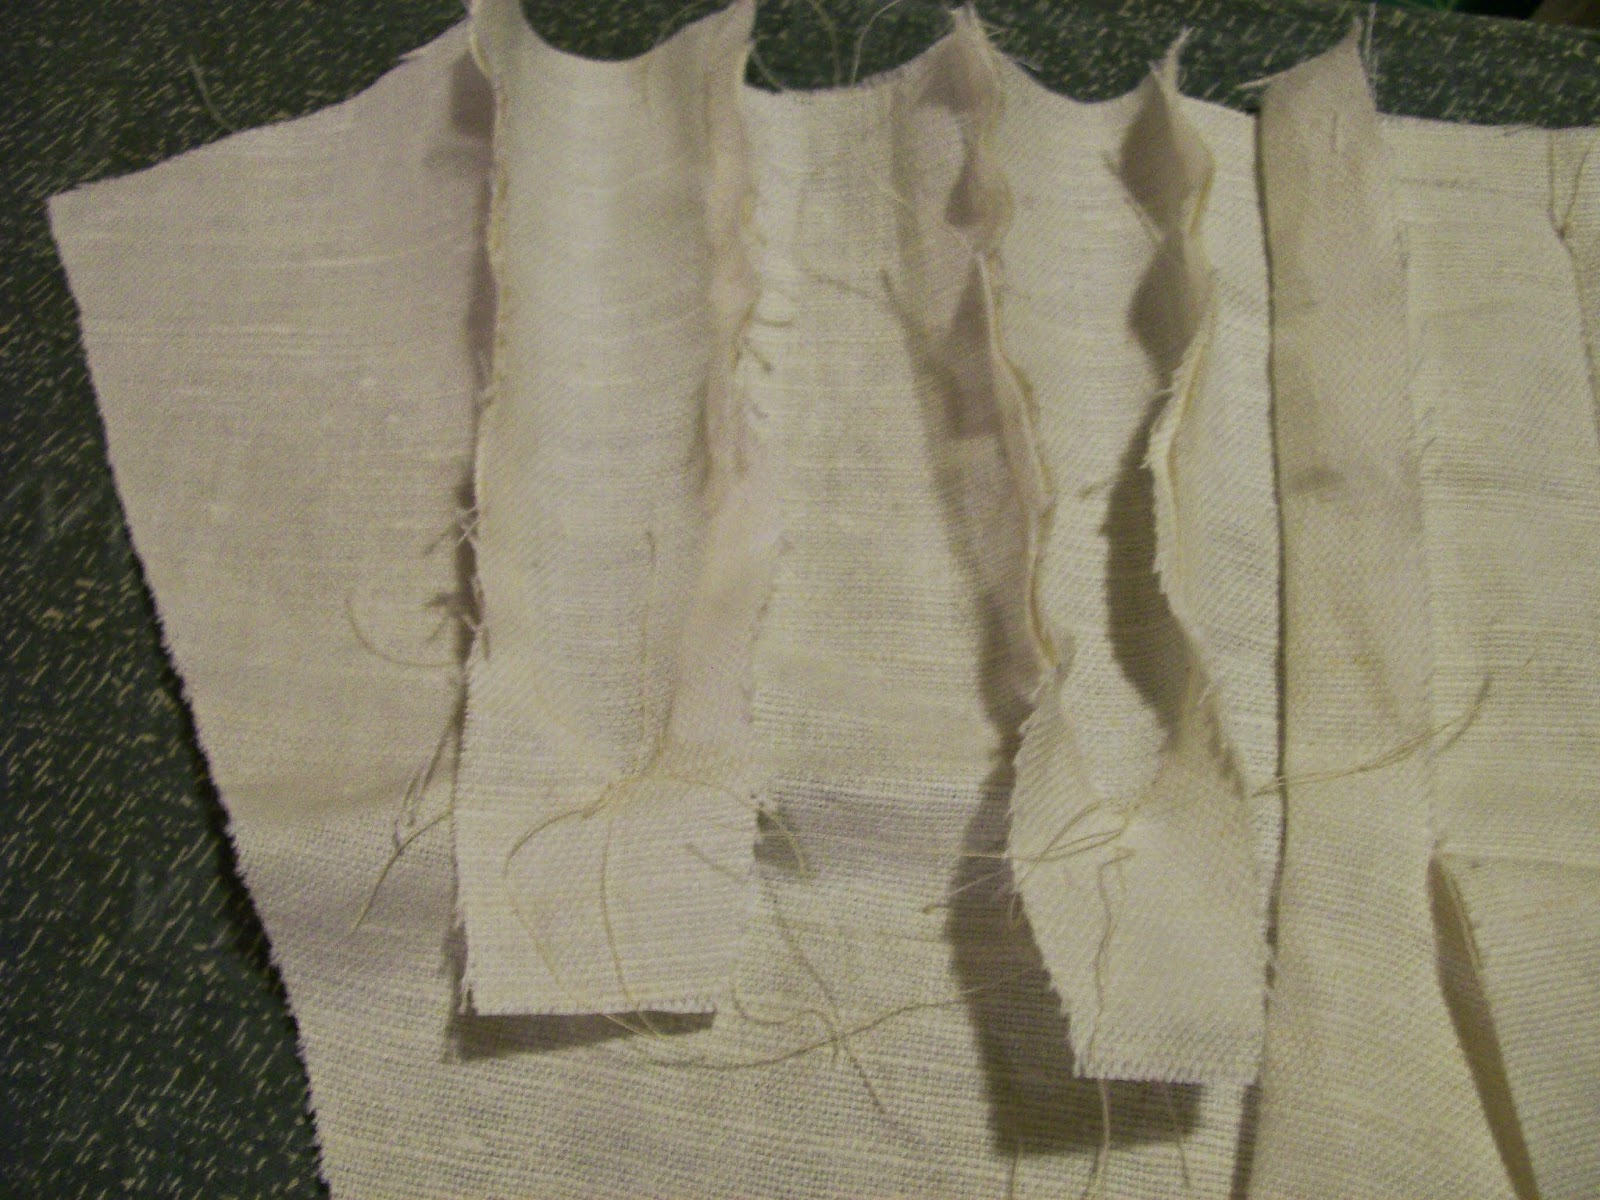 Gores stitched into outer layer of stays.